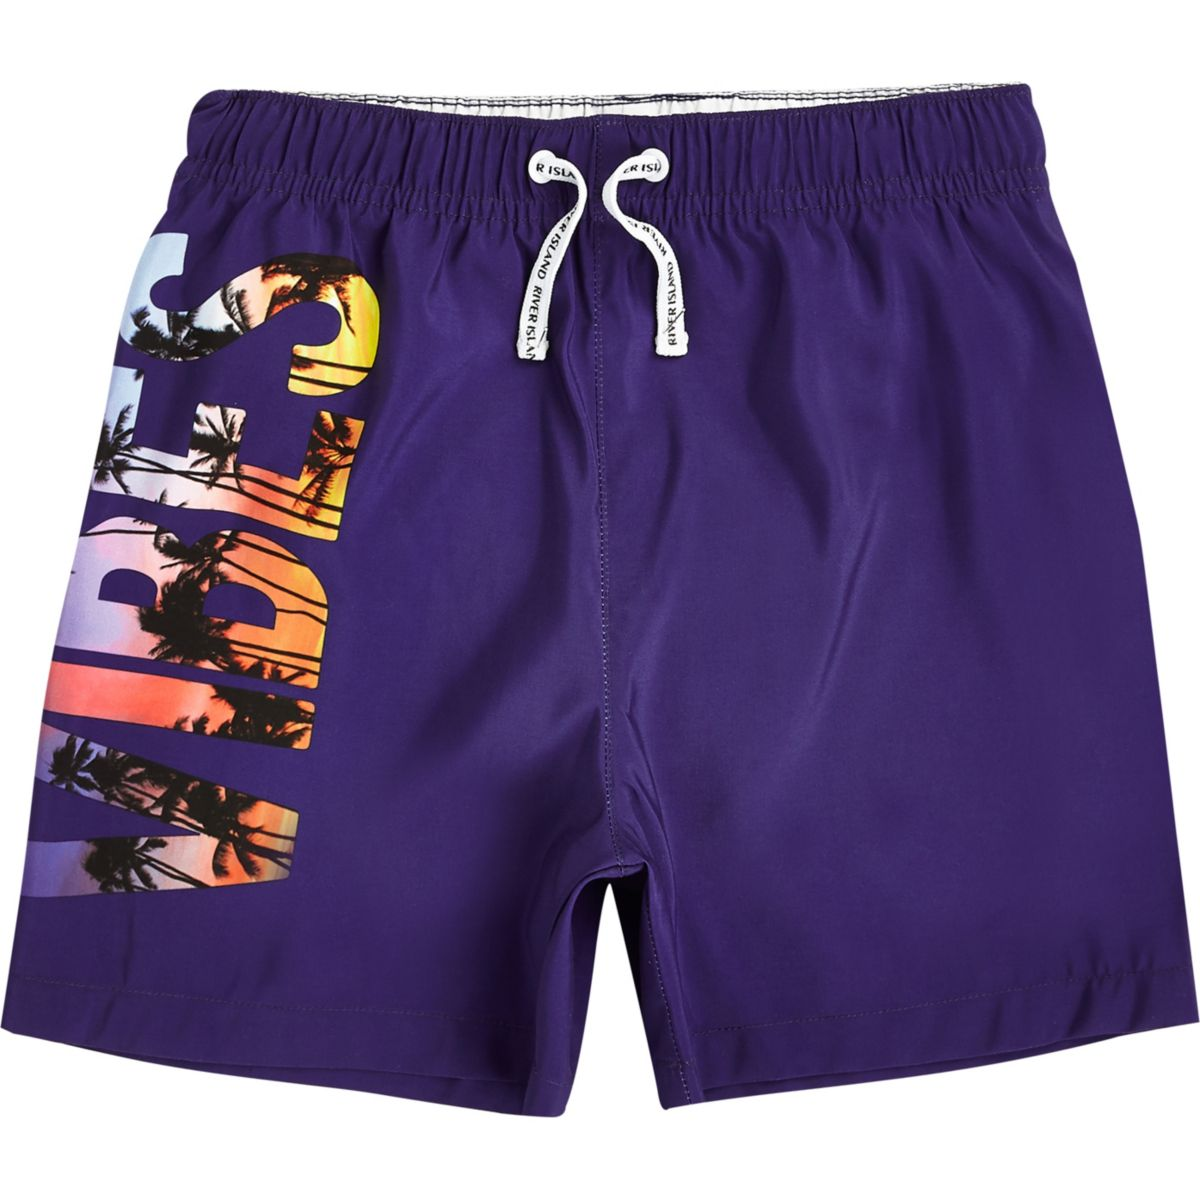 Boys purple 'vibes' print swim trunks